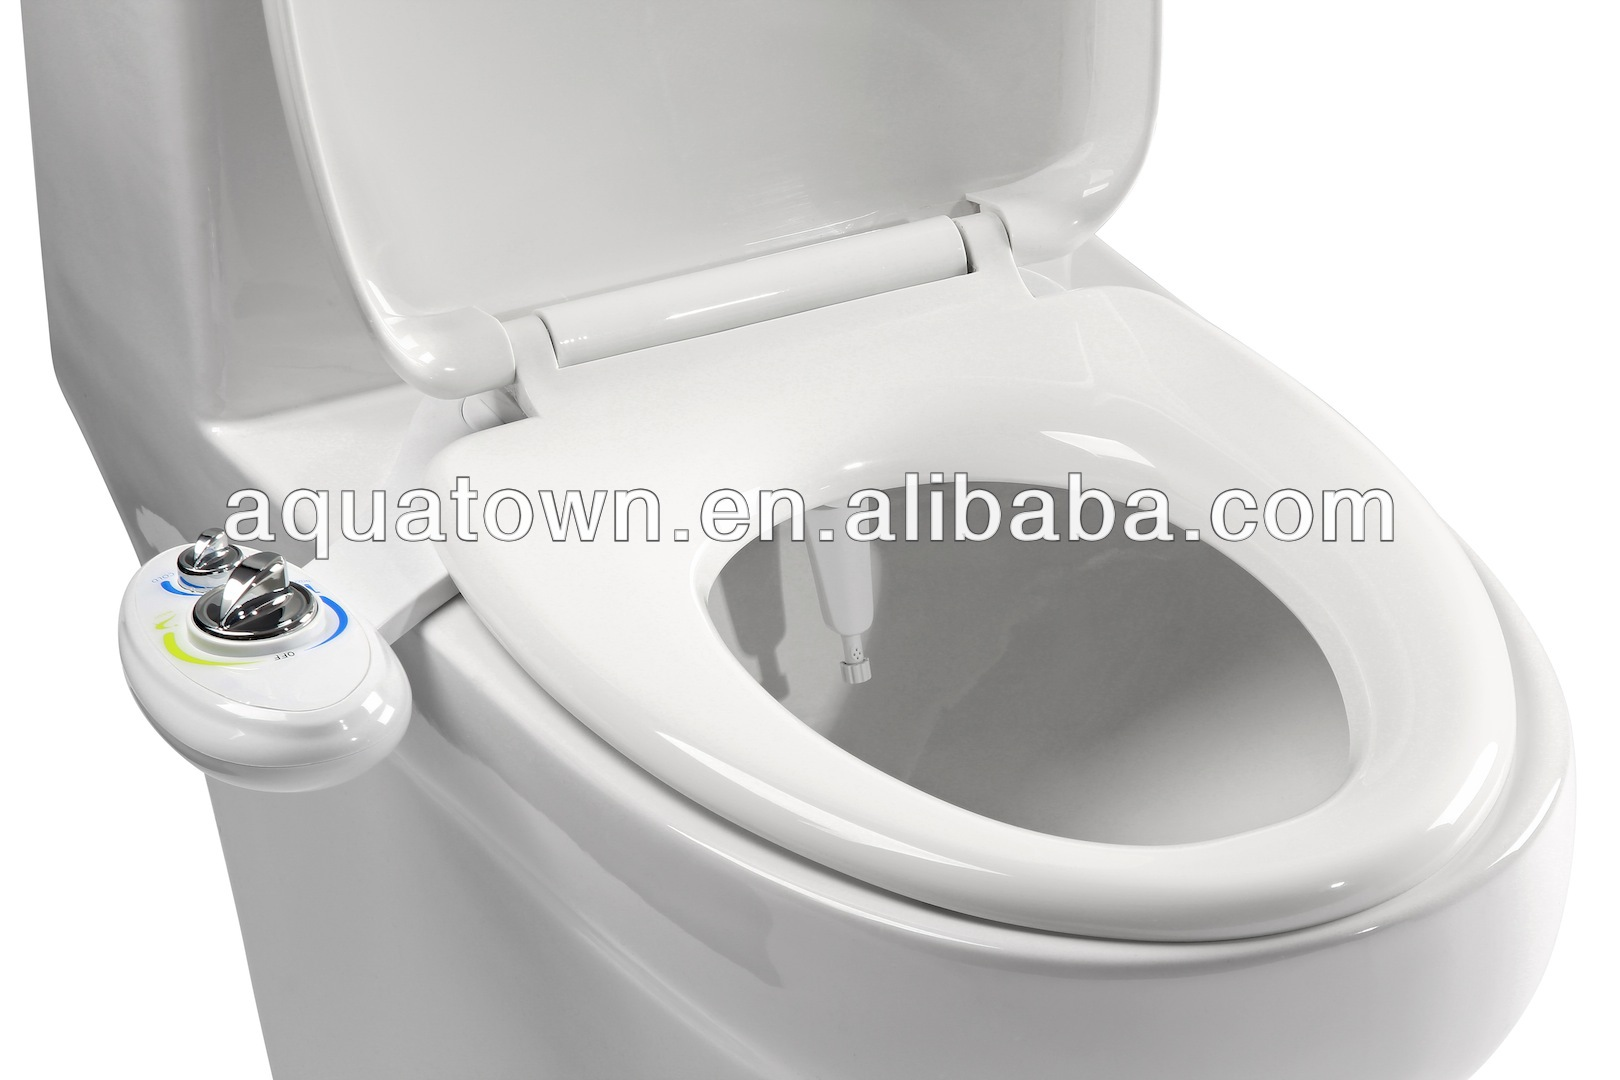 Manual Bidet AB9000SCA